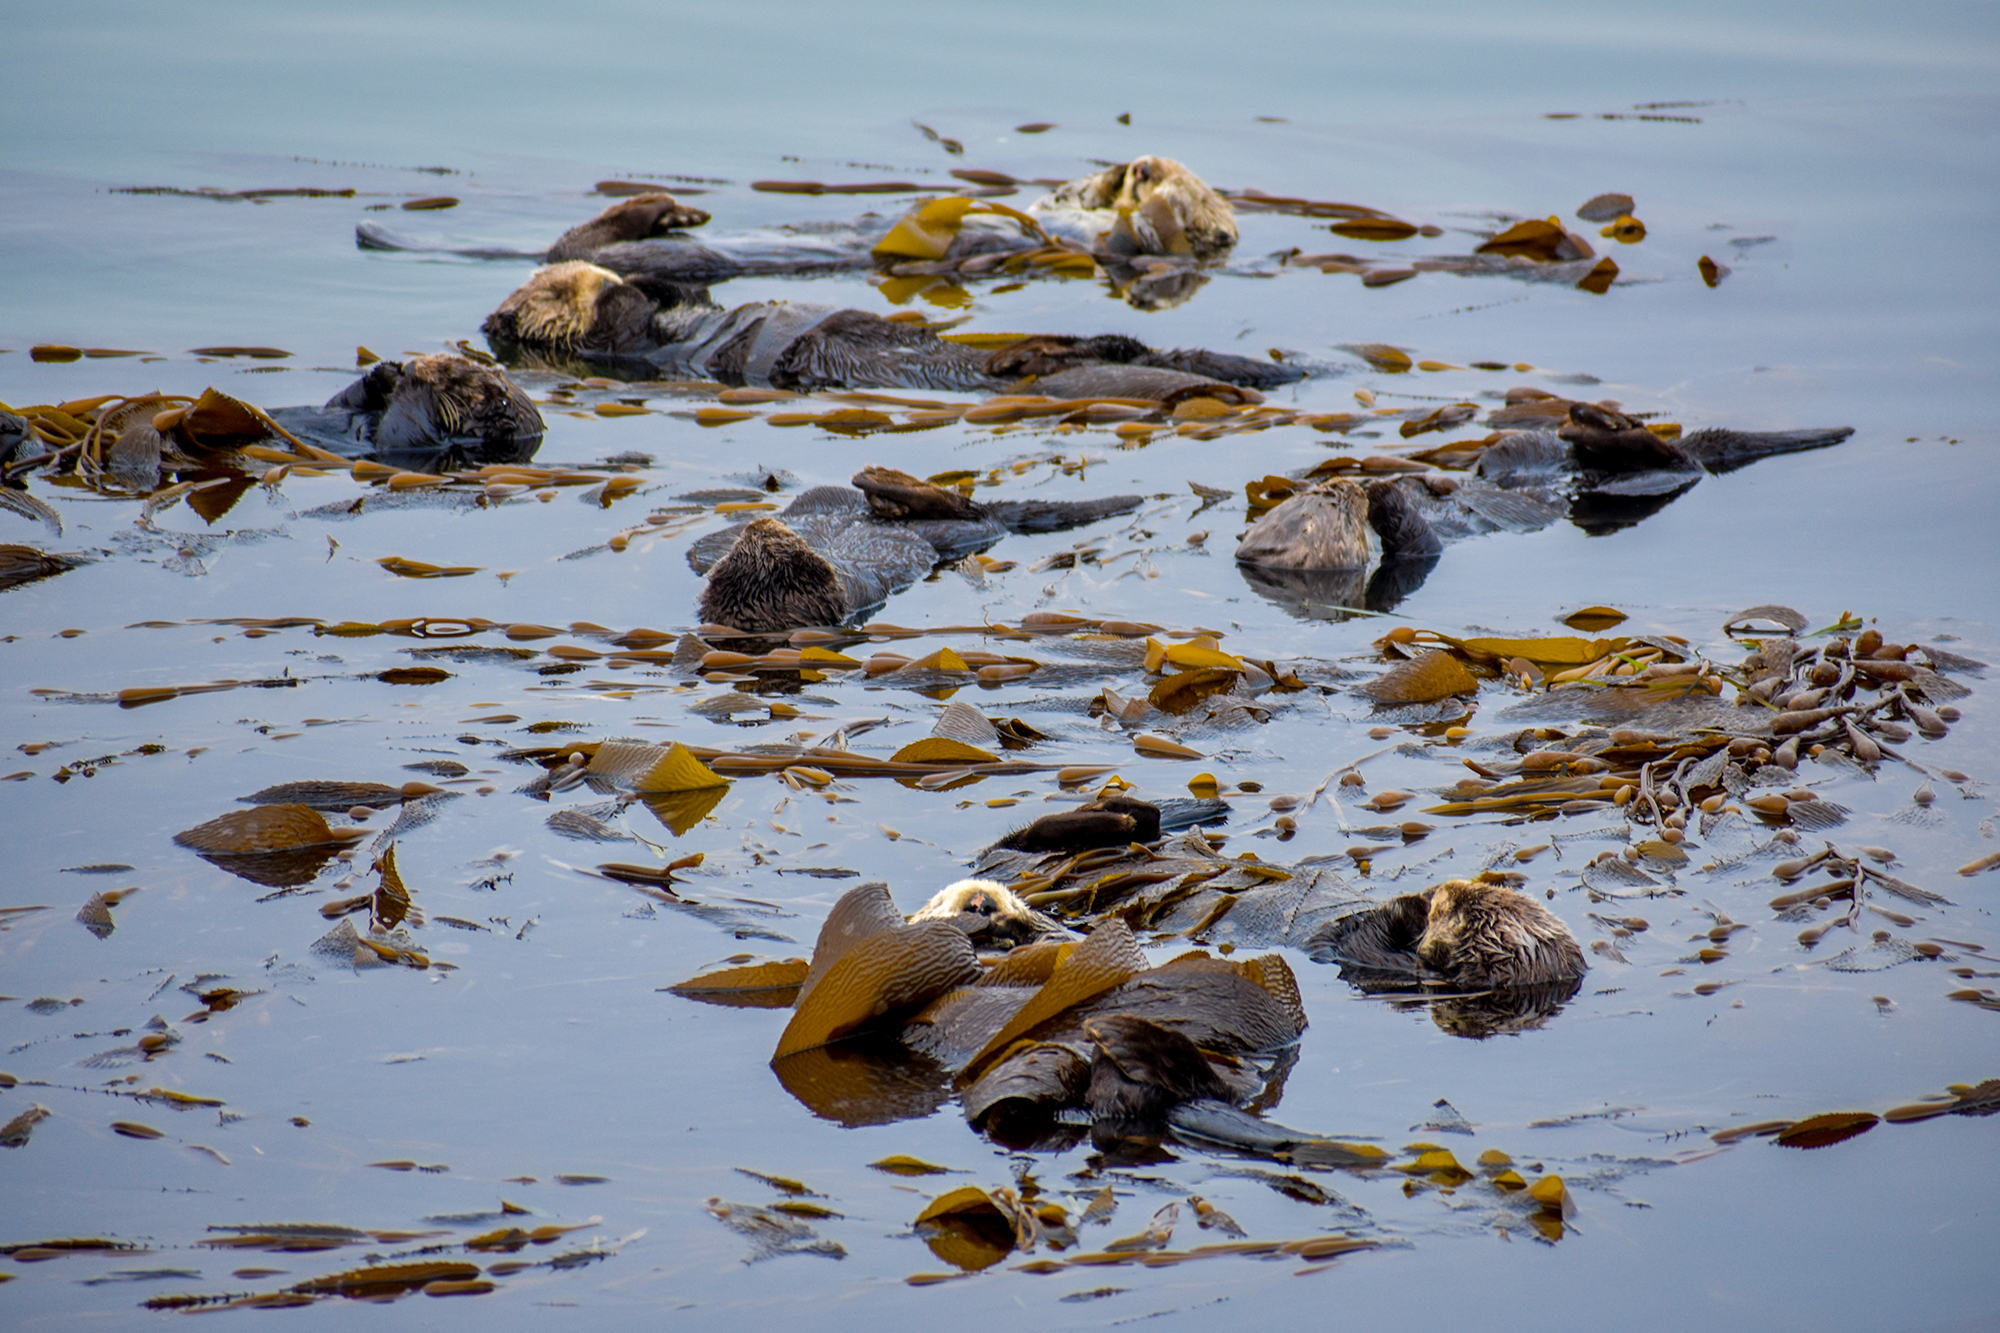 A group of sleeping sea otters wrapped in kelp in Morro Bay.